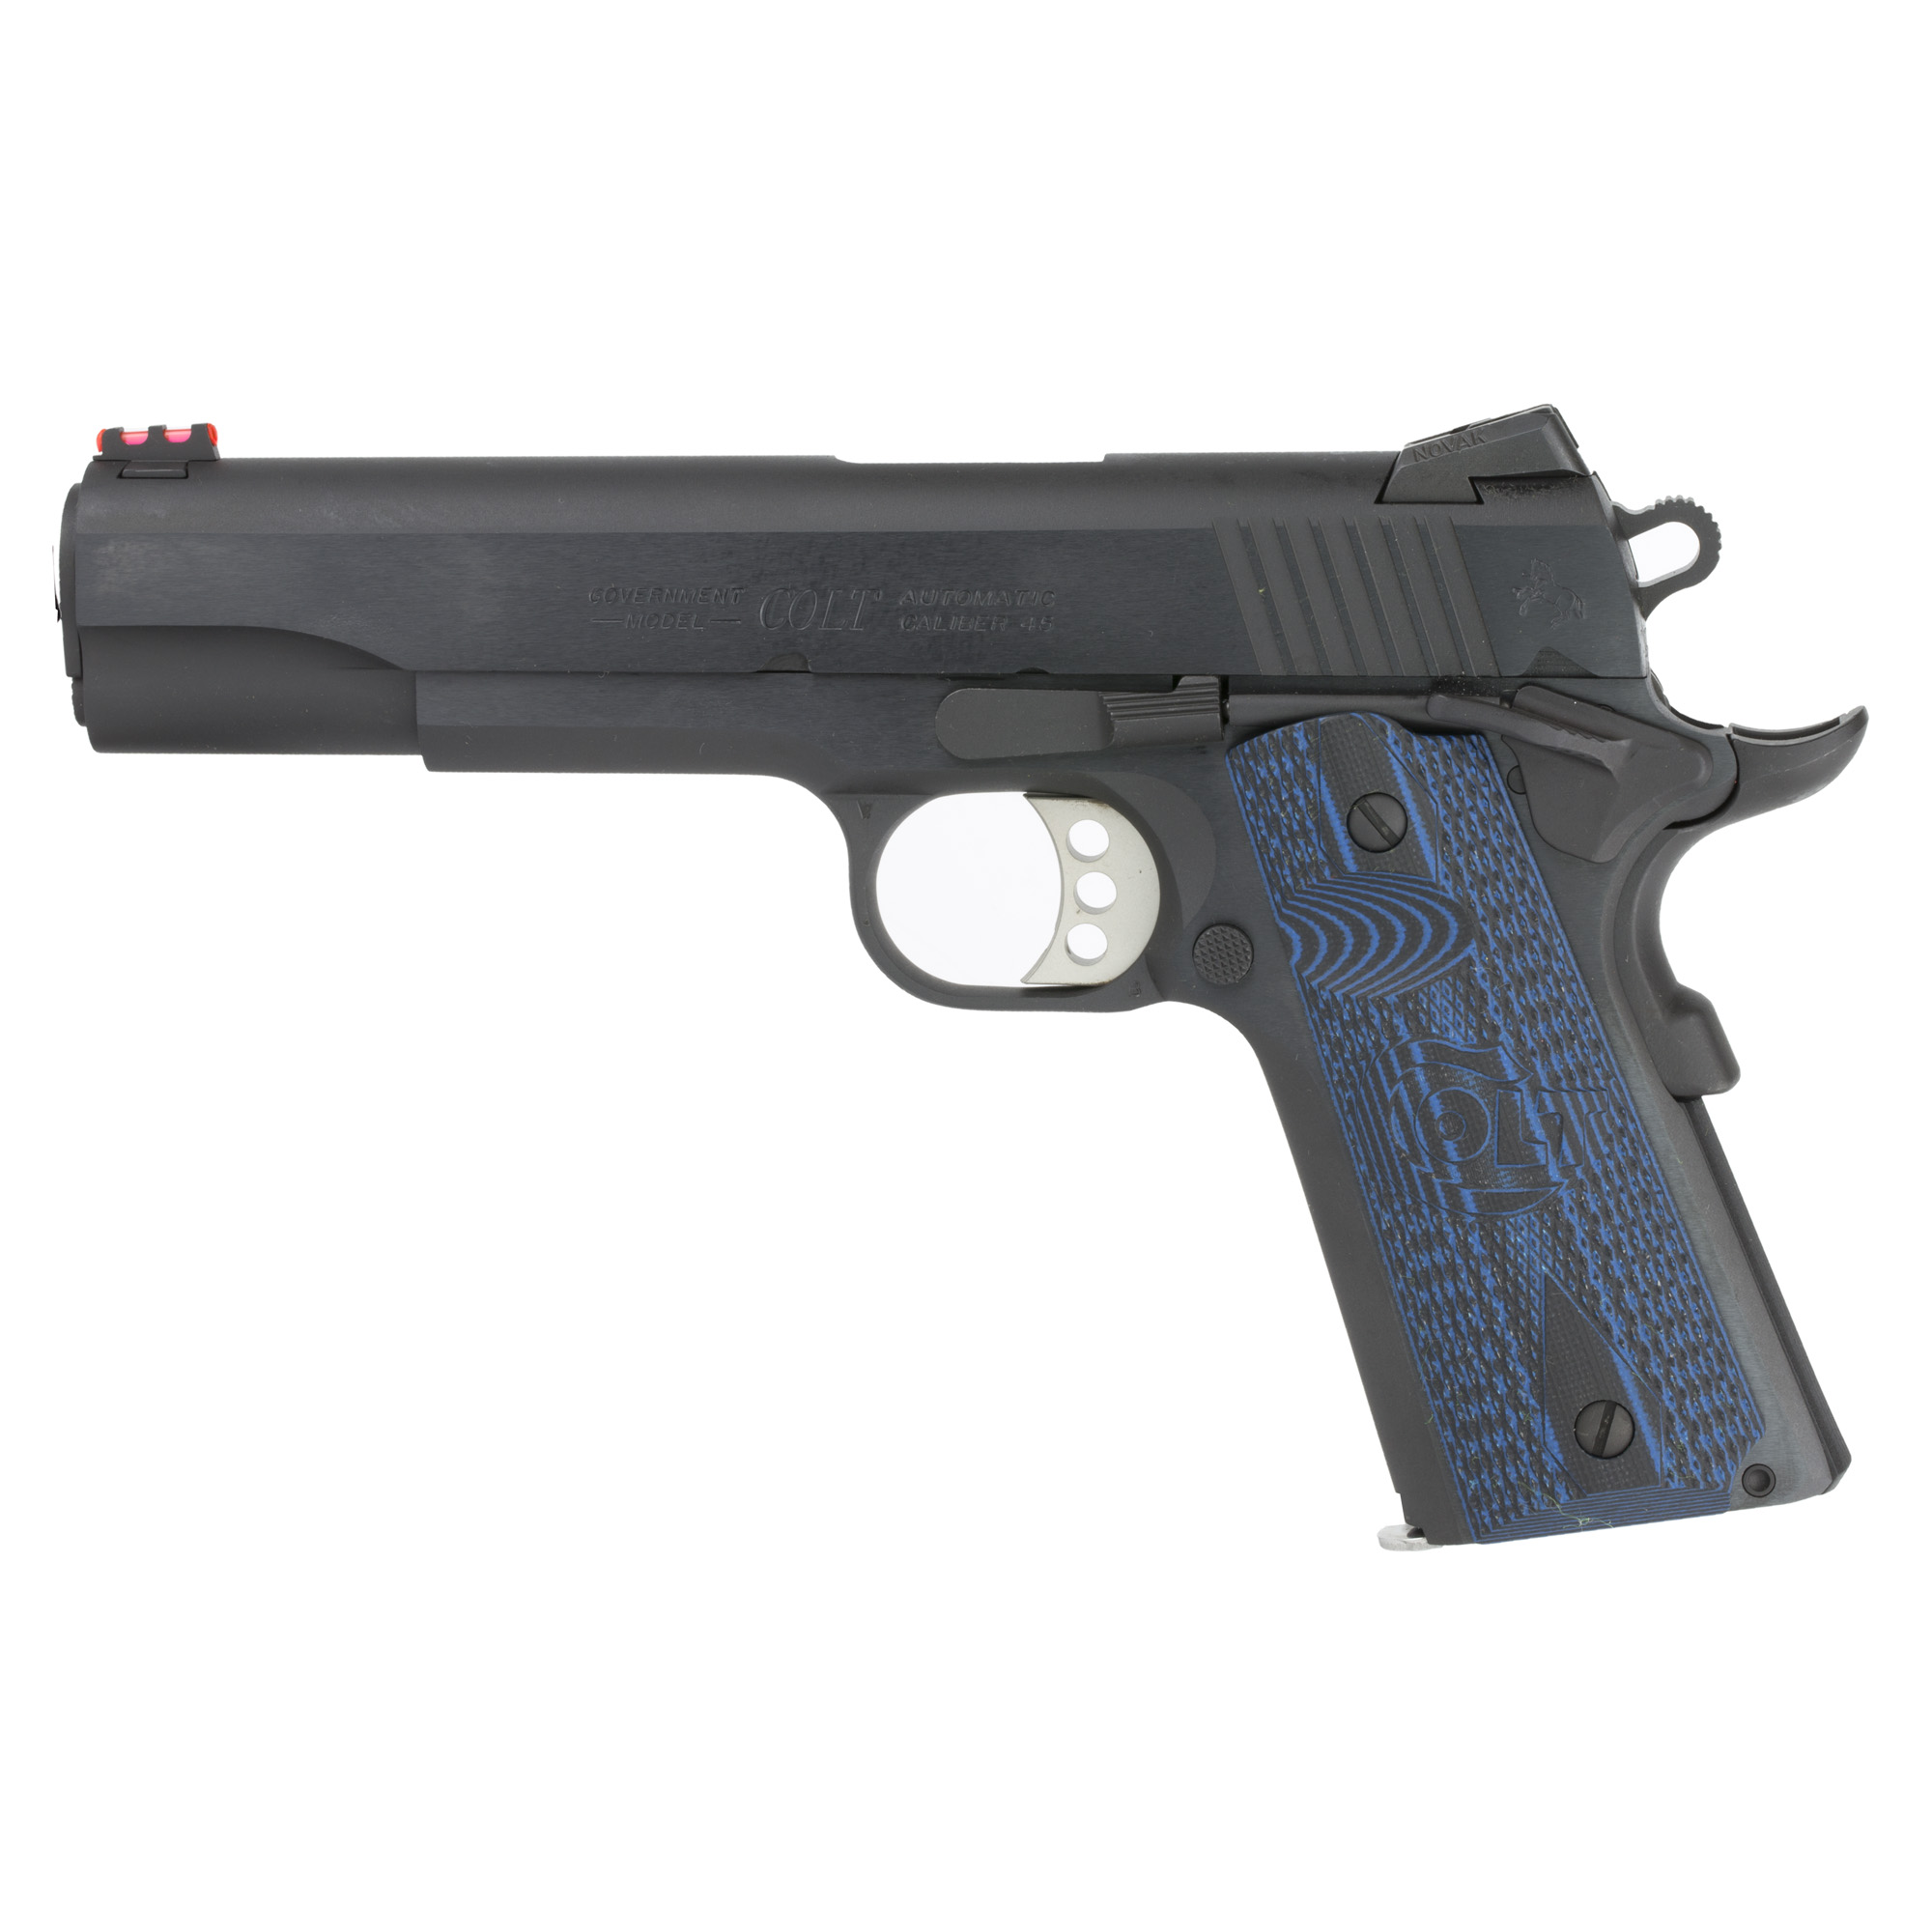 "A true competition 1911 that's ready for the battle against the timer. Now available in corrosion resistant Stainless Steel. Custom G10 Grips"" Upswept Beavertail Grip Safety"" and Undercut Trigger Guard keep the pistol low in the hand for increased control. The Dual Recoil spring system reduces felt recoil while extending recoil spring life. A National Match(R) Barrel and Novak Adjustable Fiber Optic Sights help with precision shooting. The Series 70 Firing System ensures a clean crisp trigger pull."